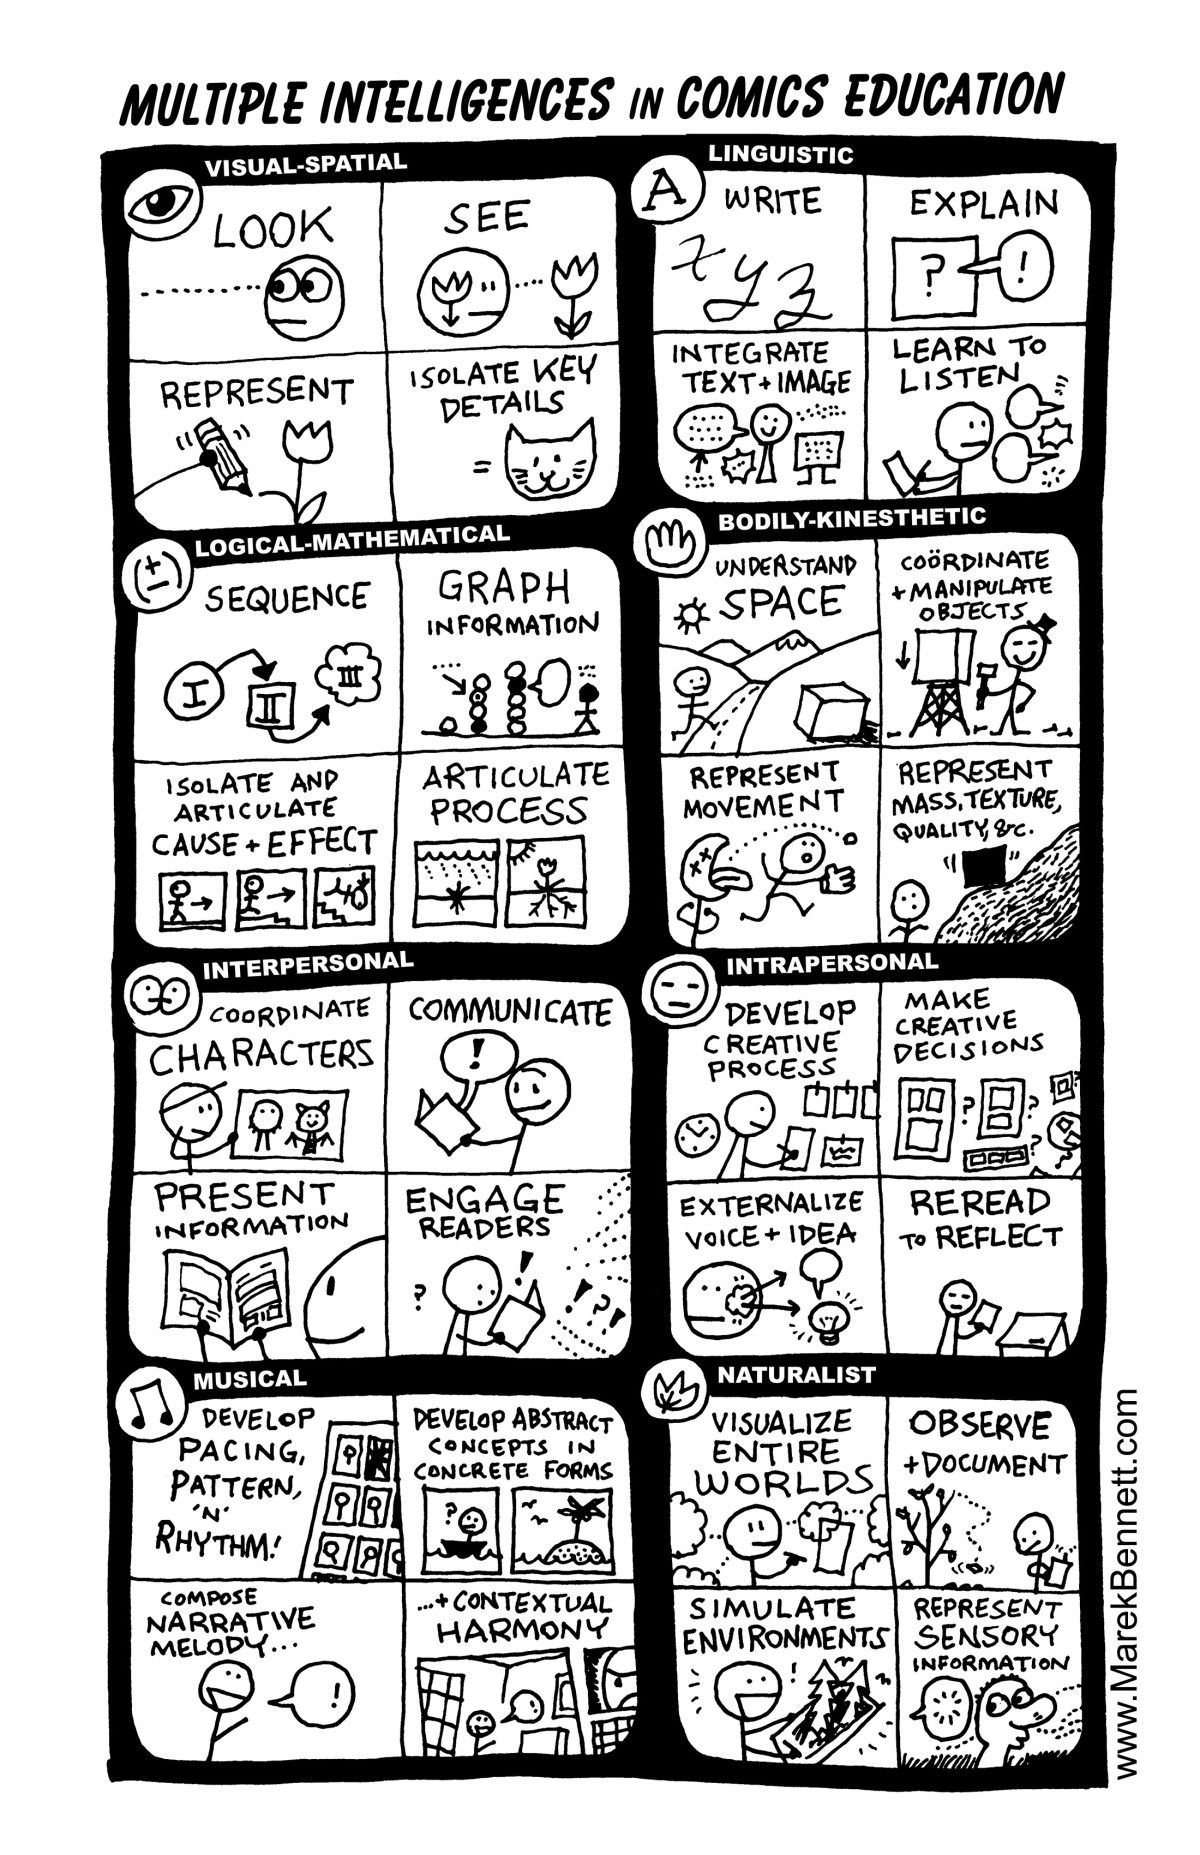 poster: multiple intelligences in comics ed | school-related